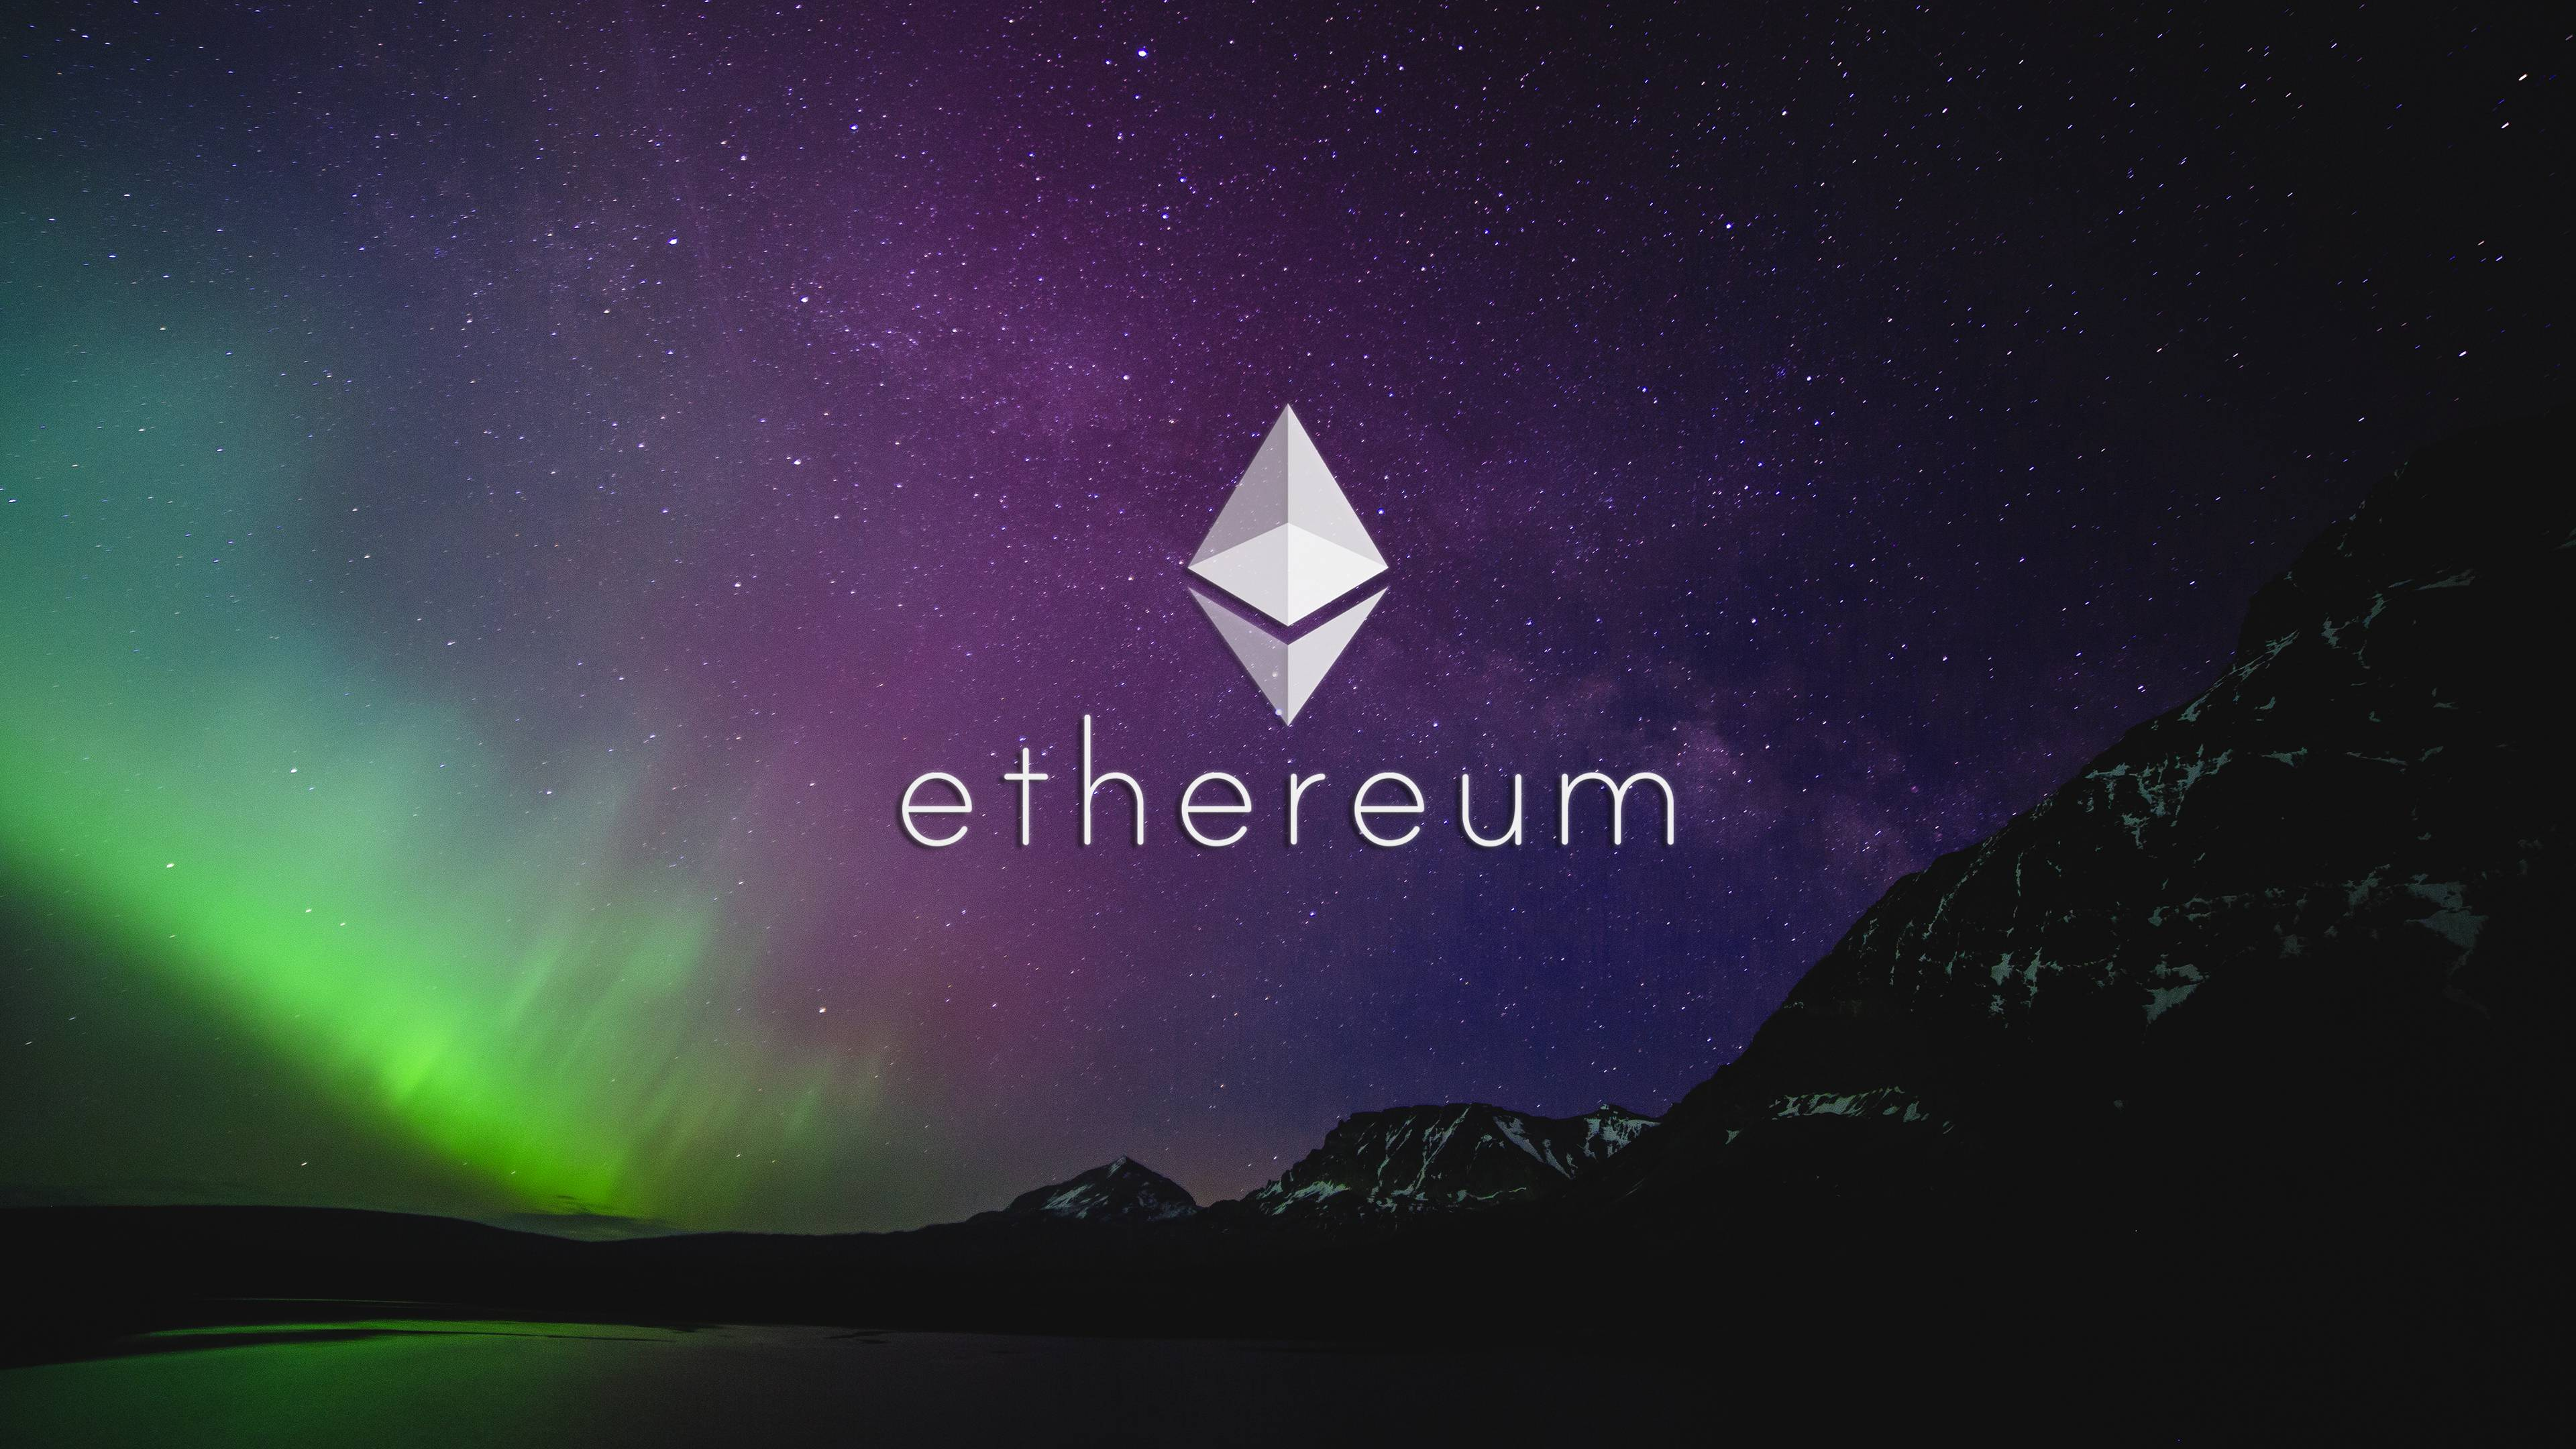 I Made a 4k Ethereum Wallpaper   Album on Imgur 3840x2160